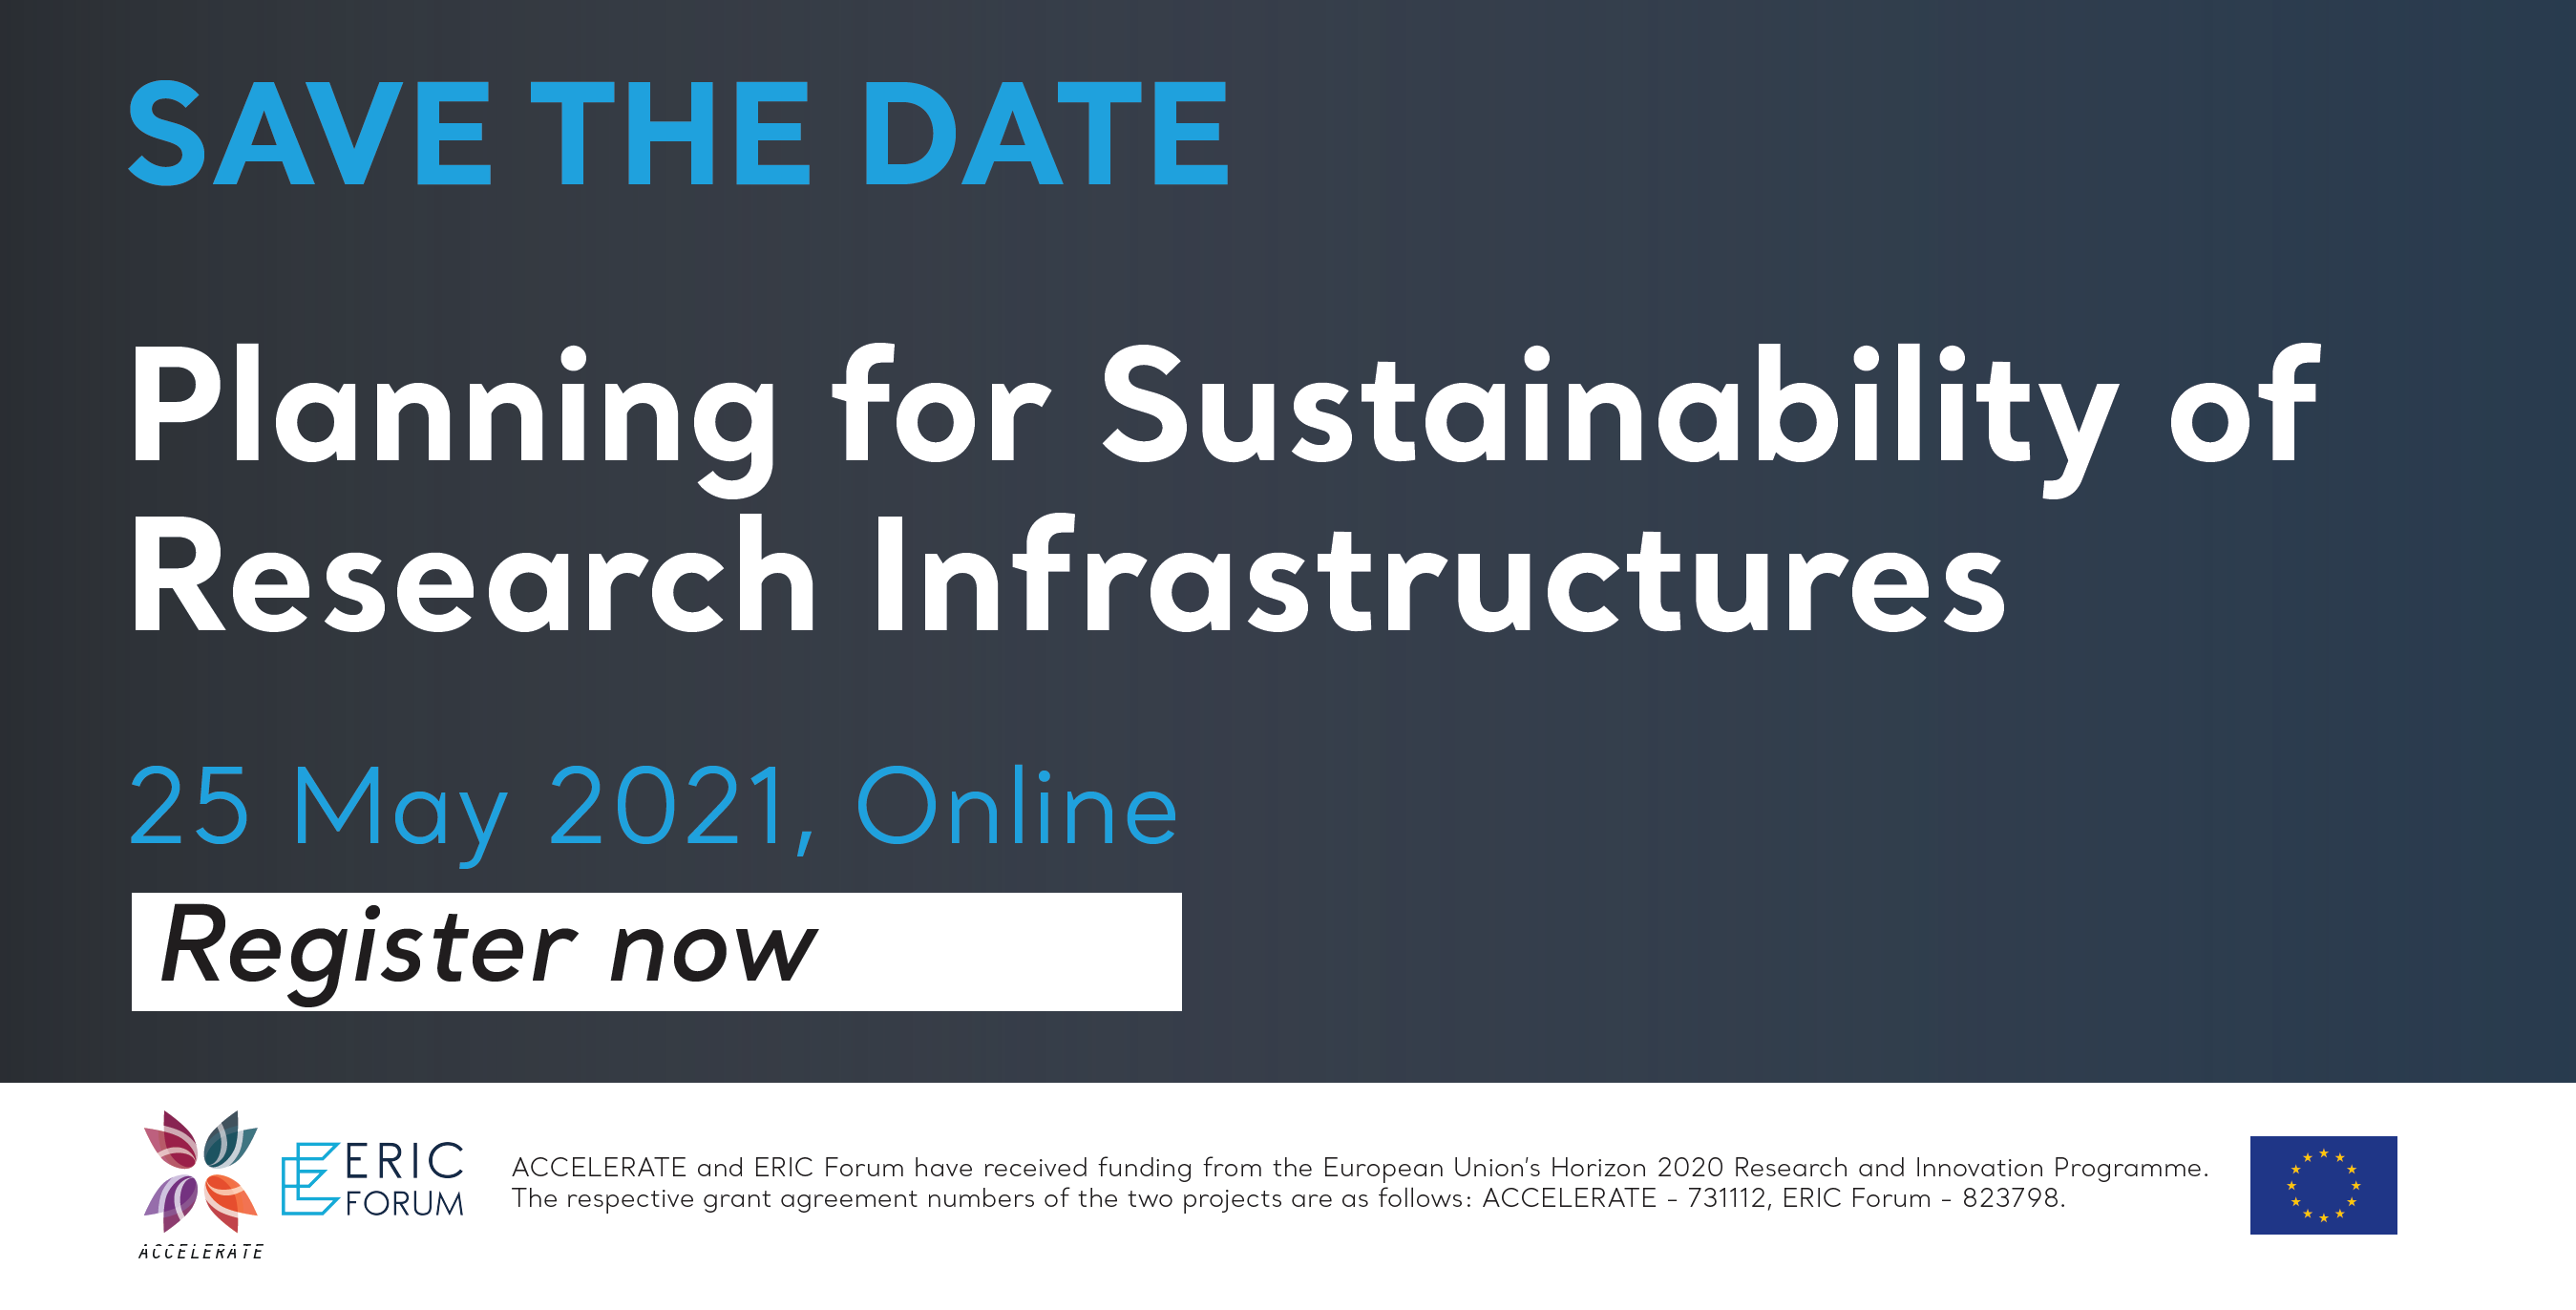 Register now ► Planning for Sustainability of Research Infrastructures